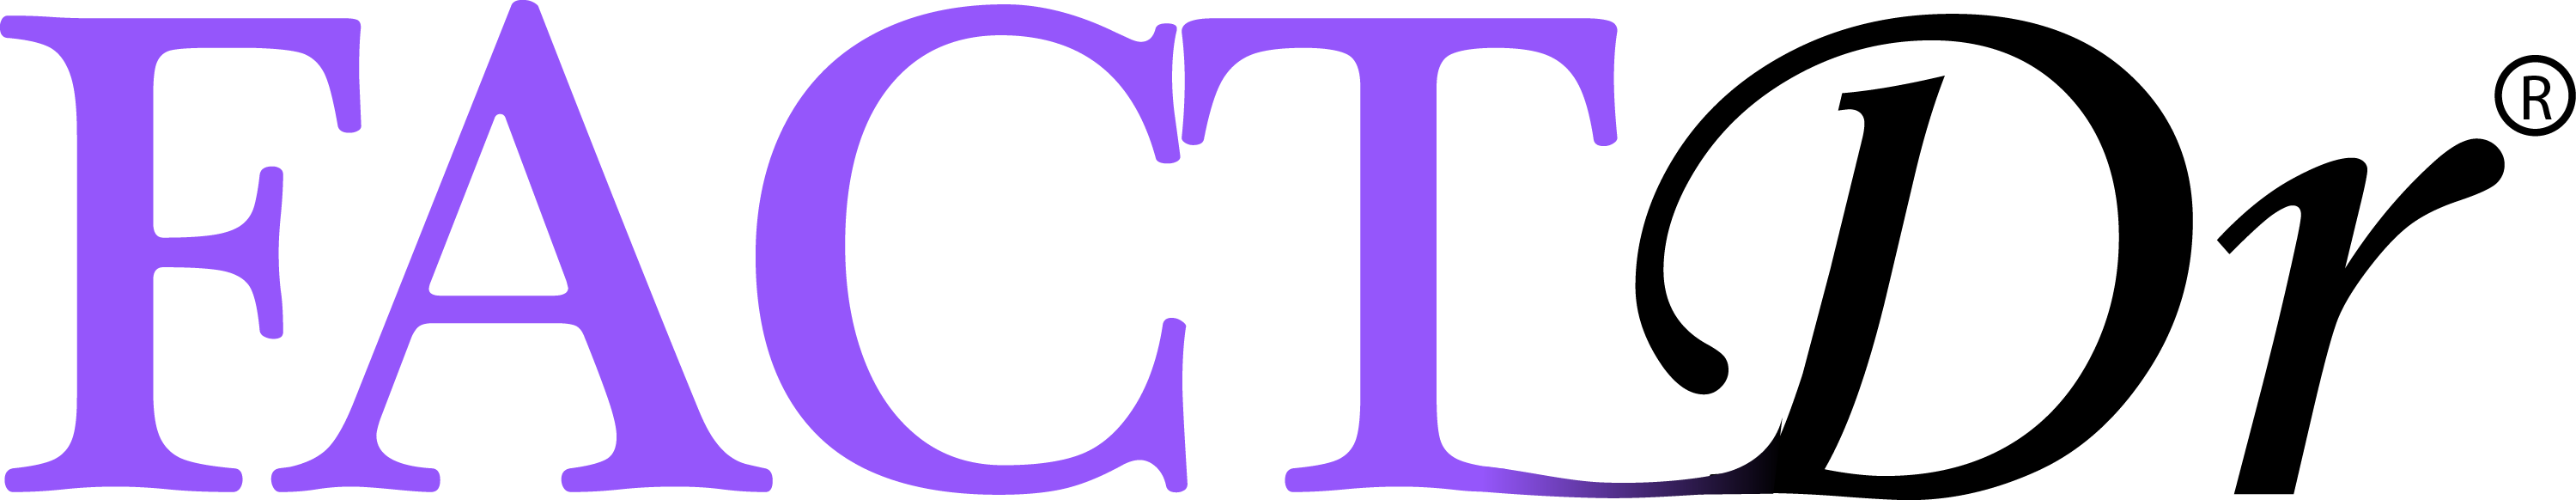 Factdr Factual Research Healthy Living